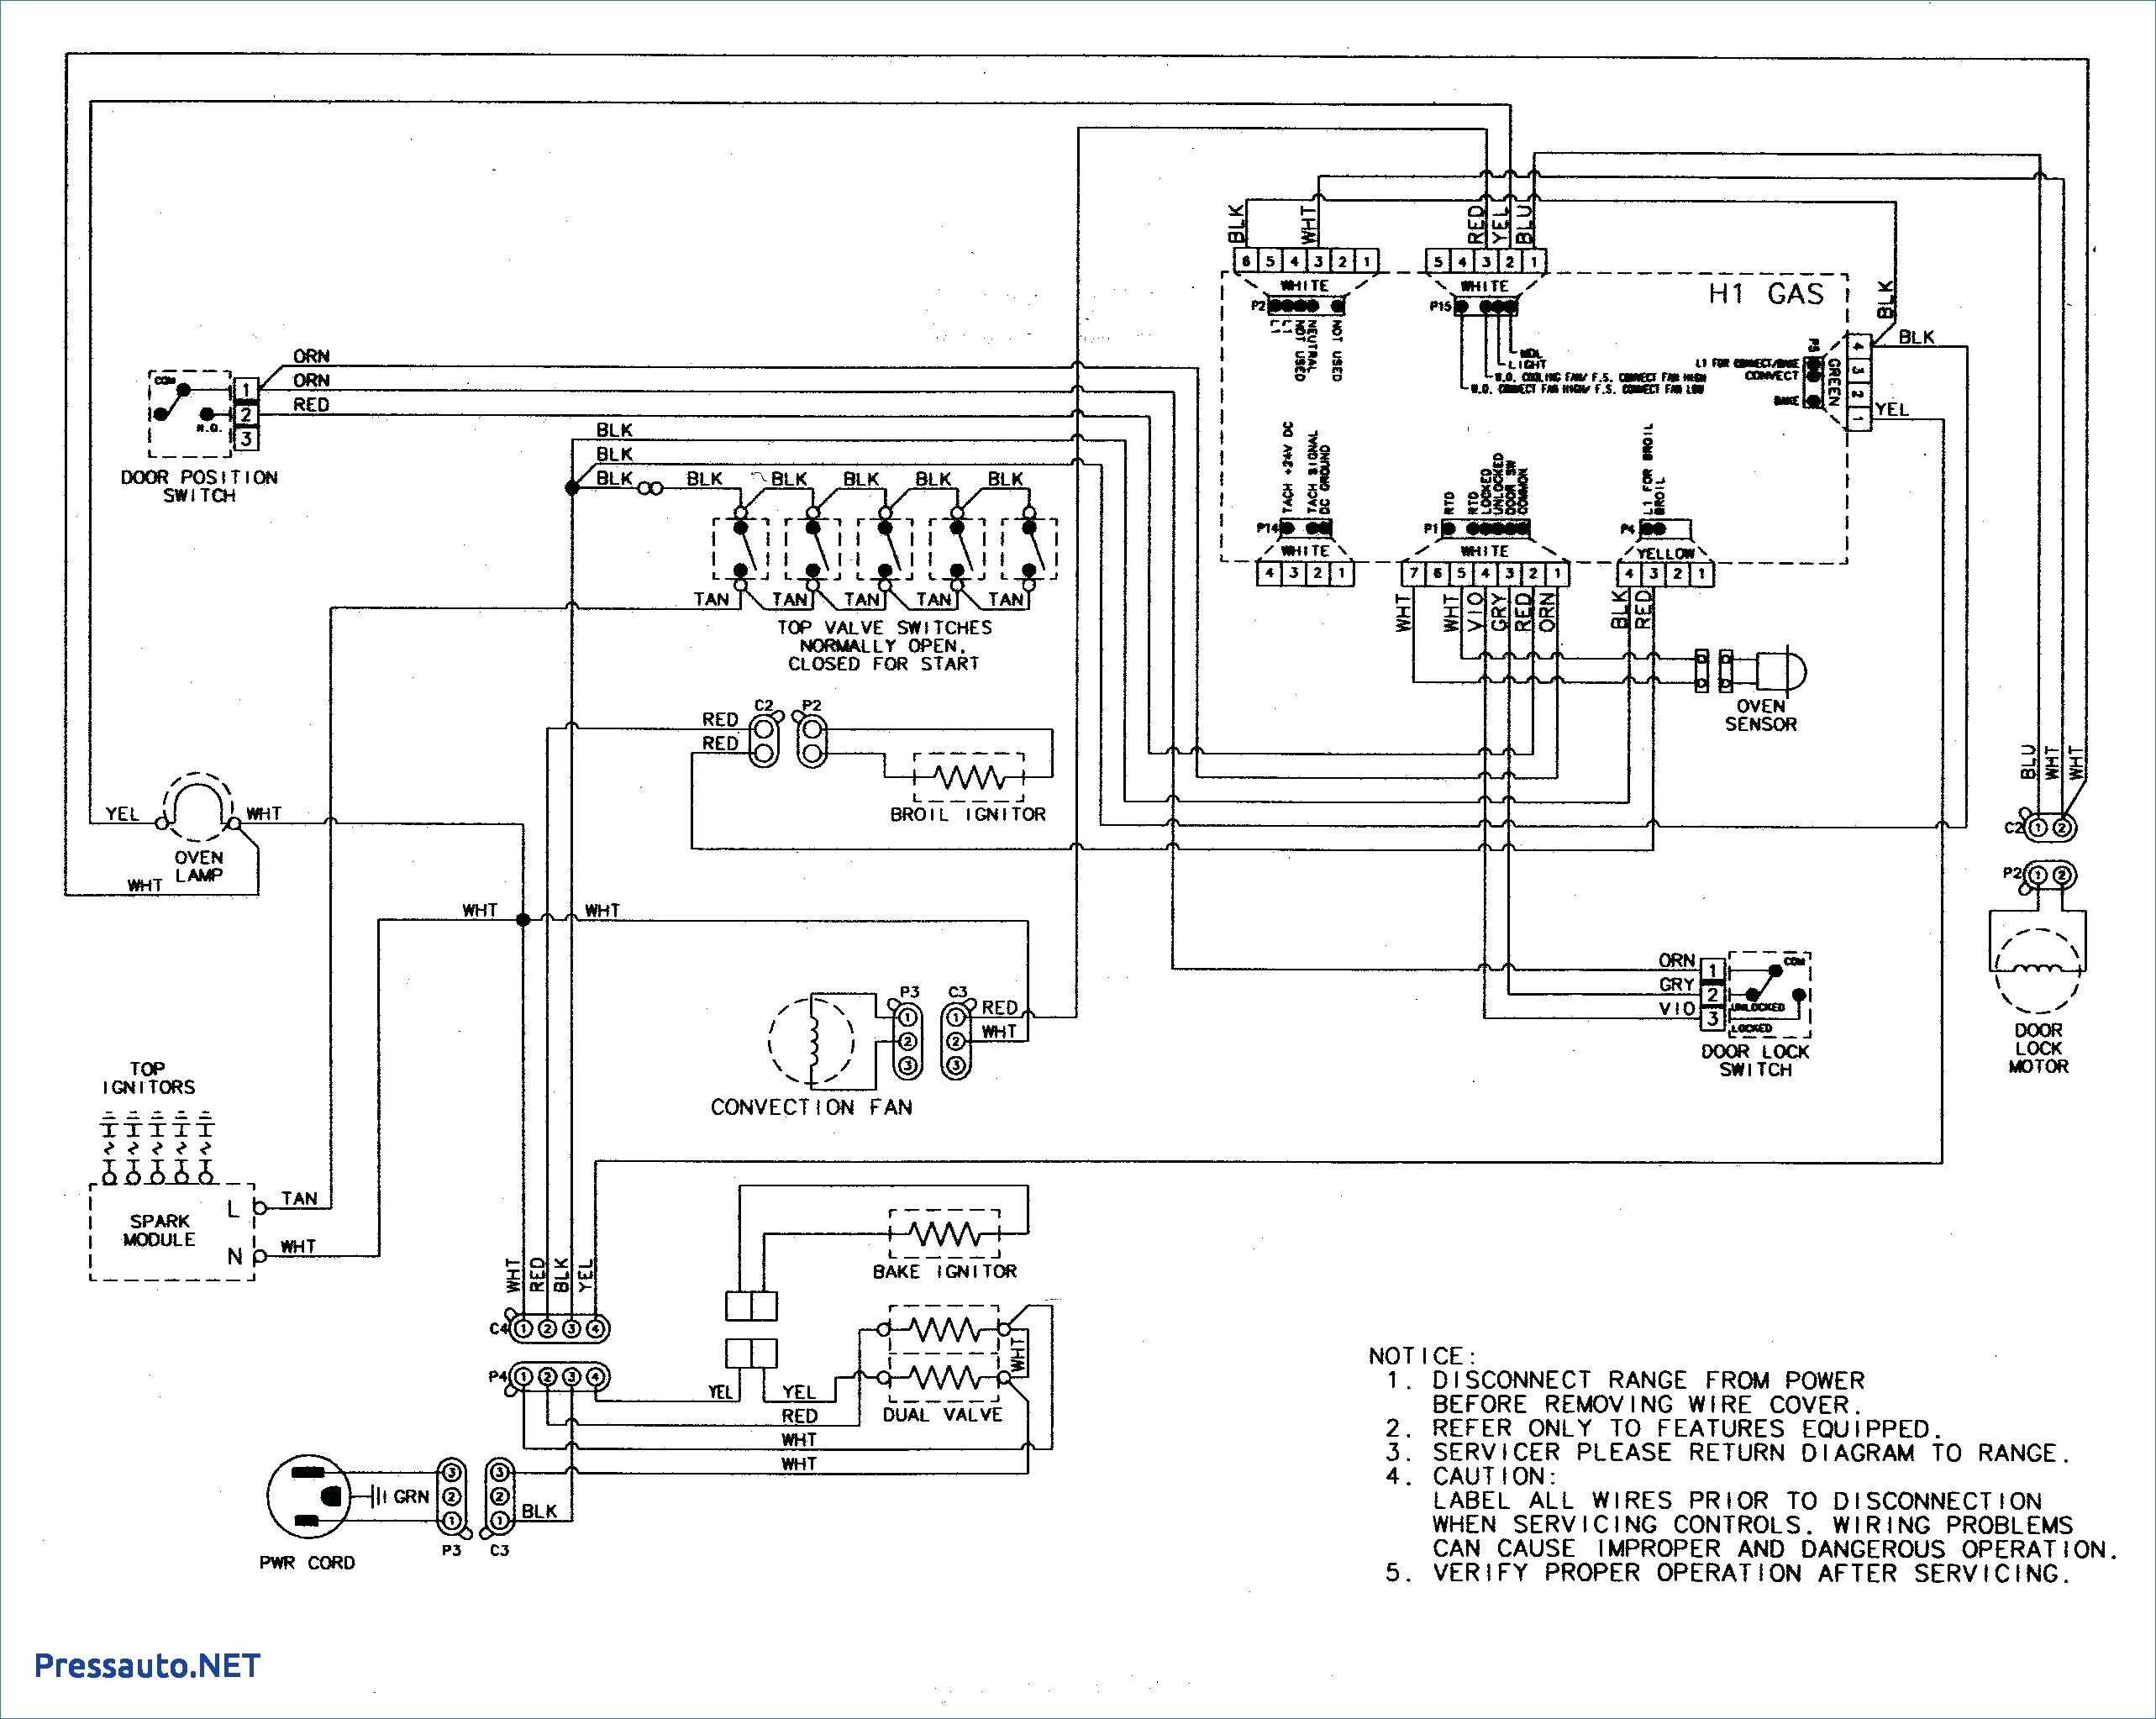 Ge Profile Dryer Wiring Diagram - Diagrams Catalogue on